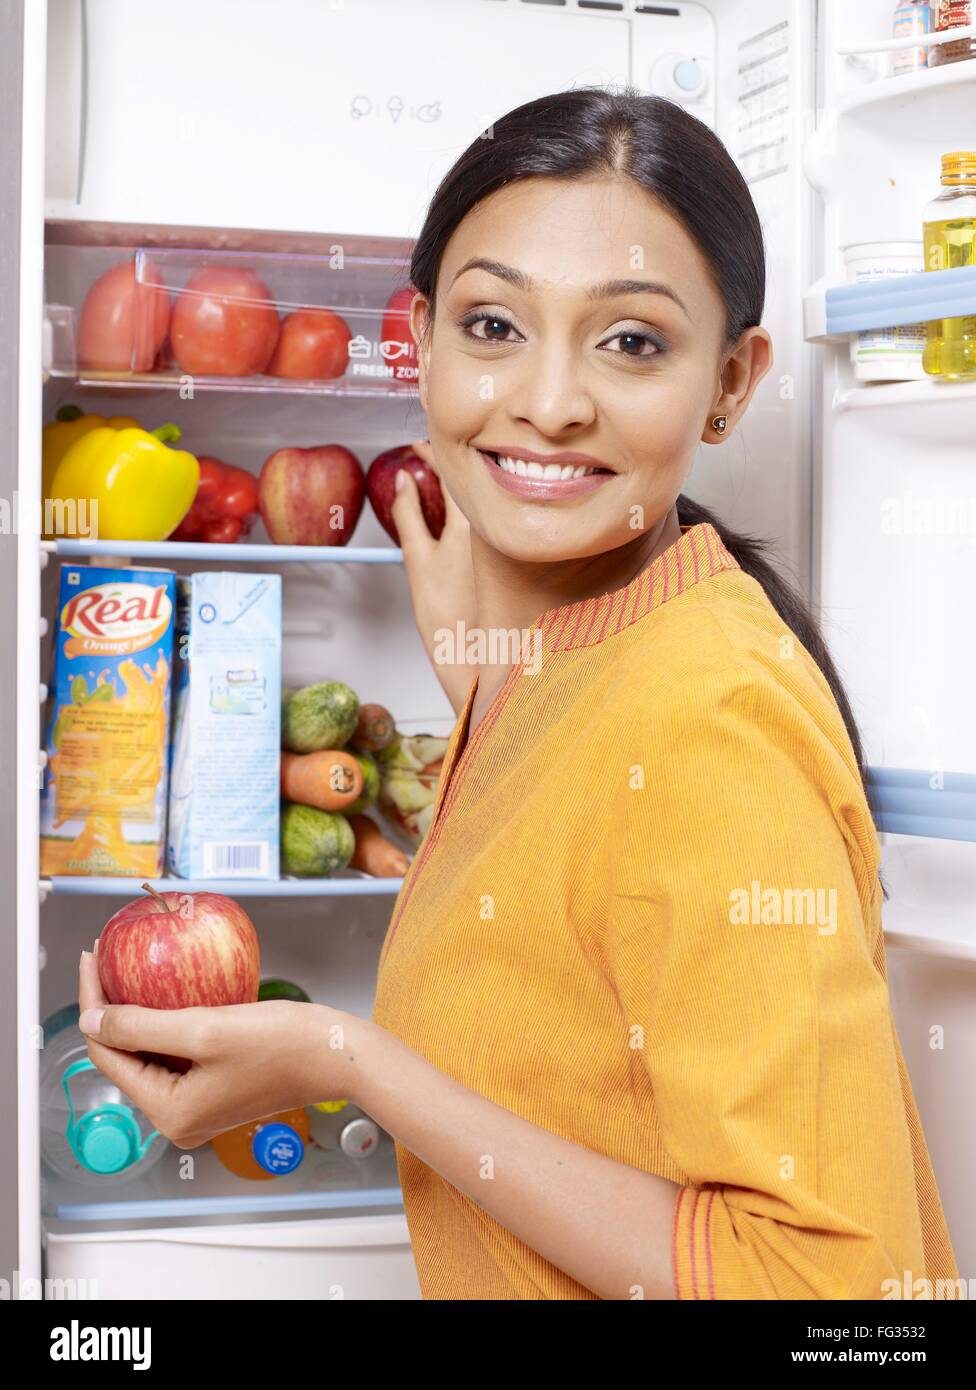 Young lady kept red apple in refrigerator MR#702U - Stock Image